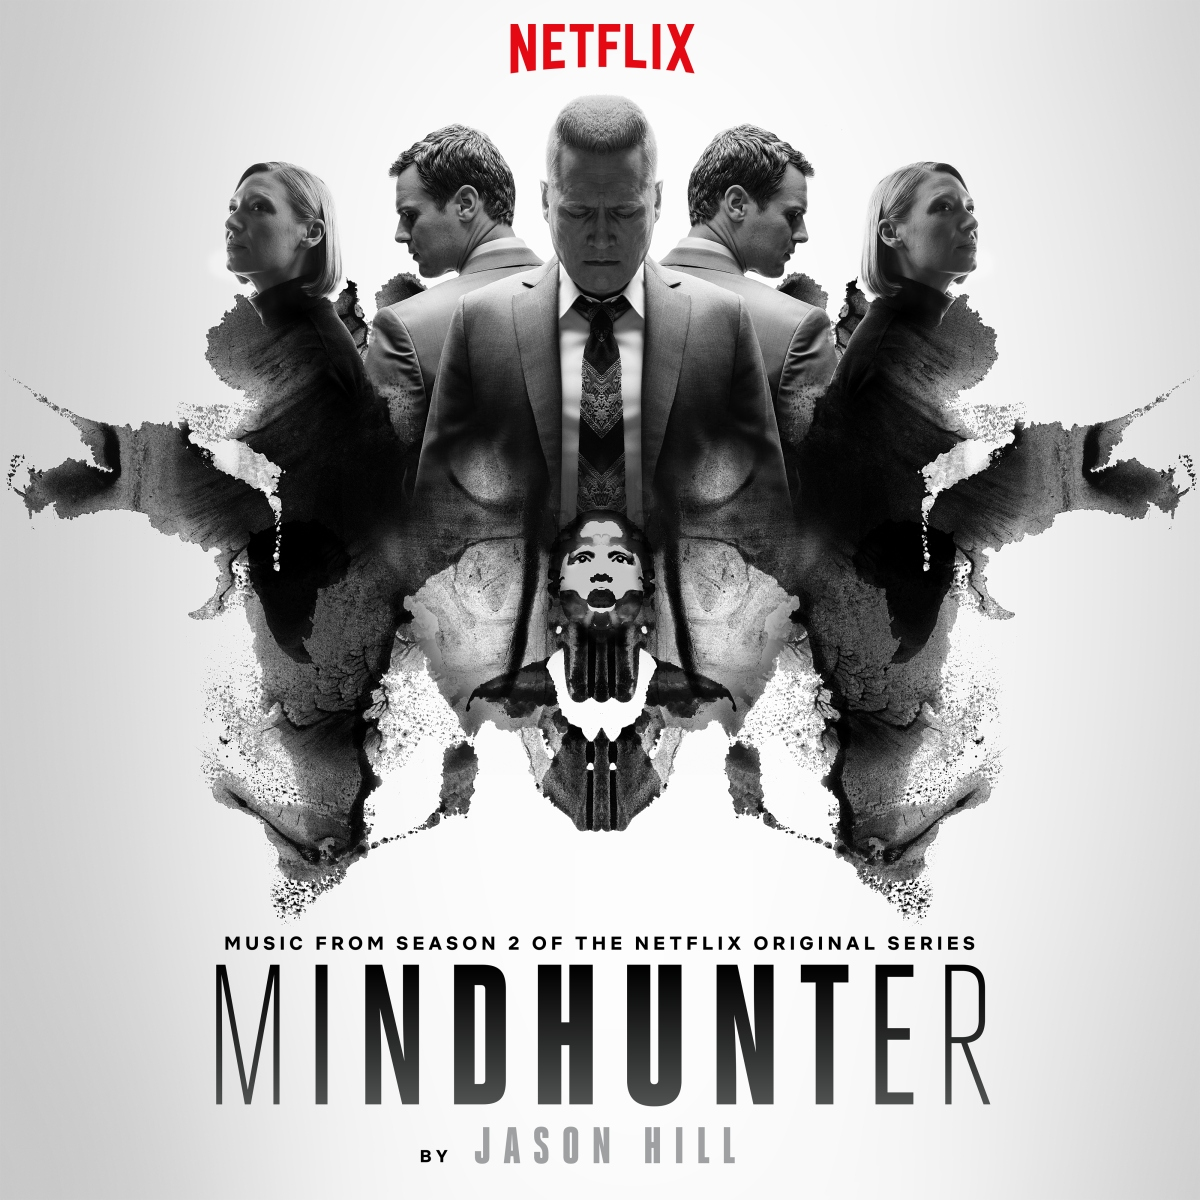 MINDHUNTER Season 2 Soundtrack Out on December 6